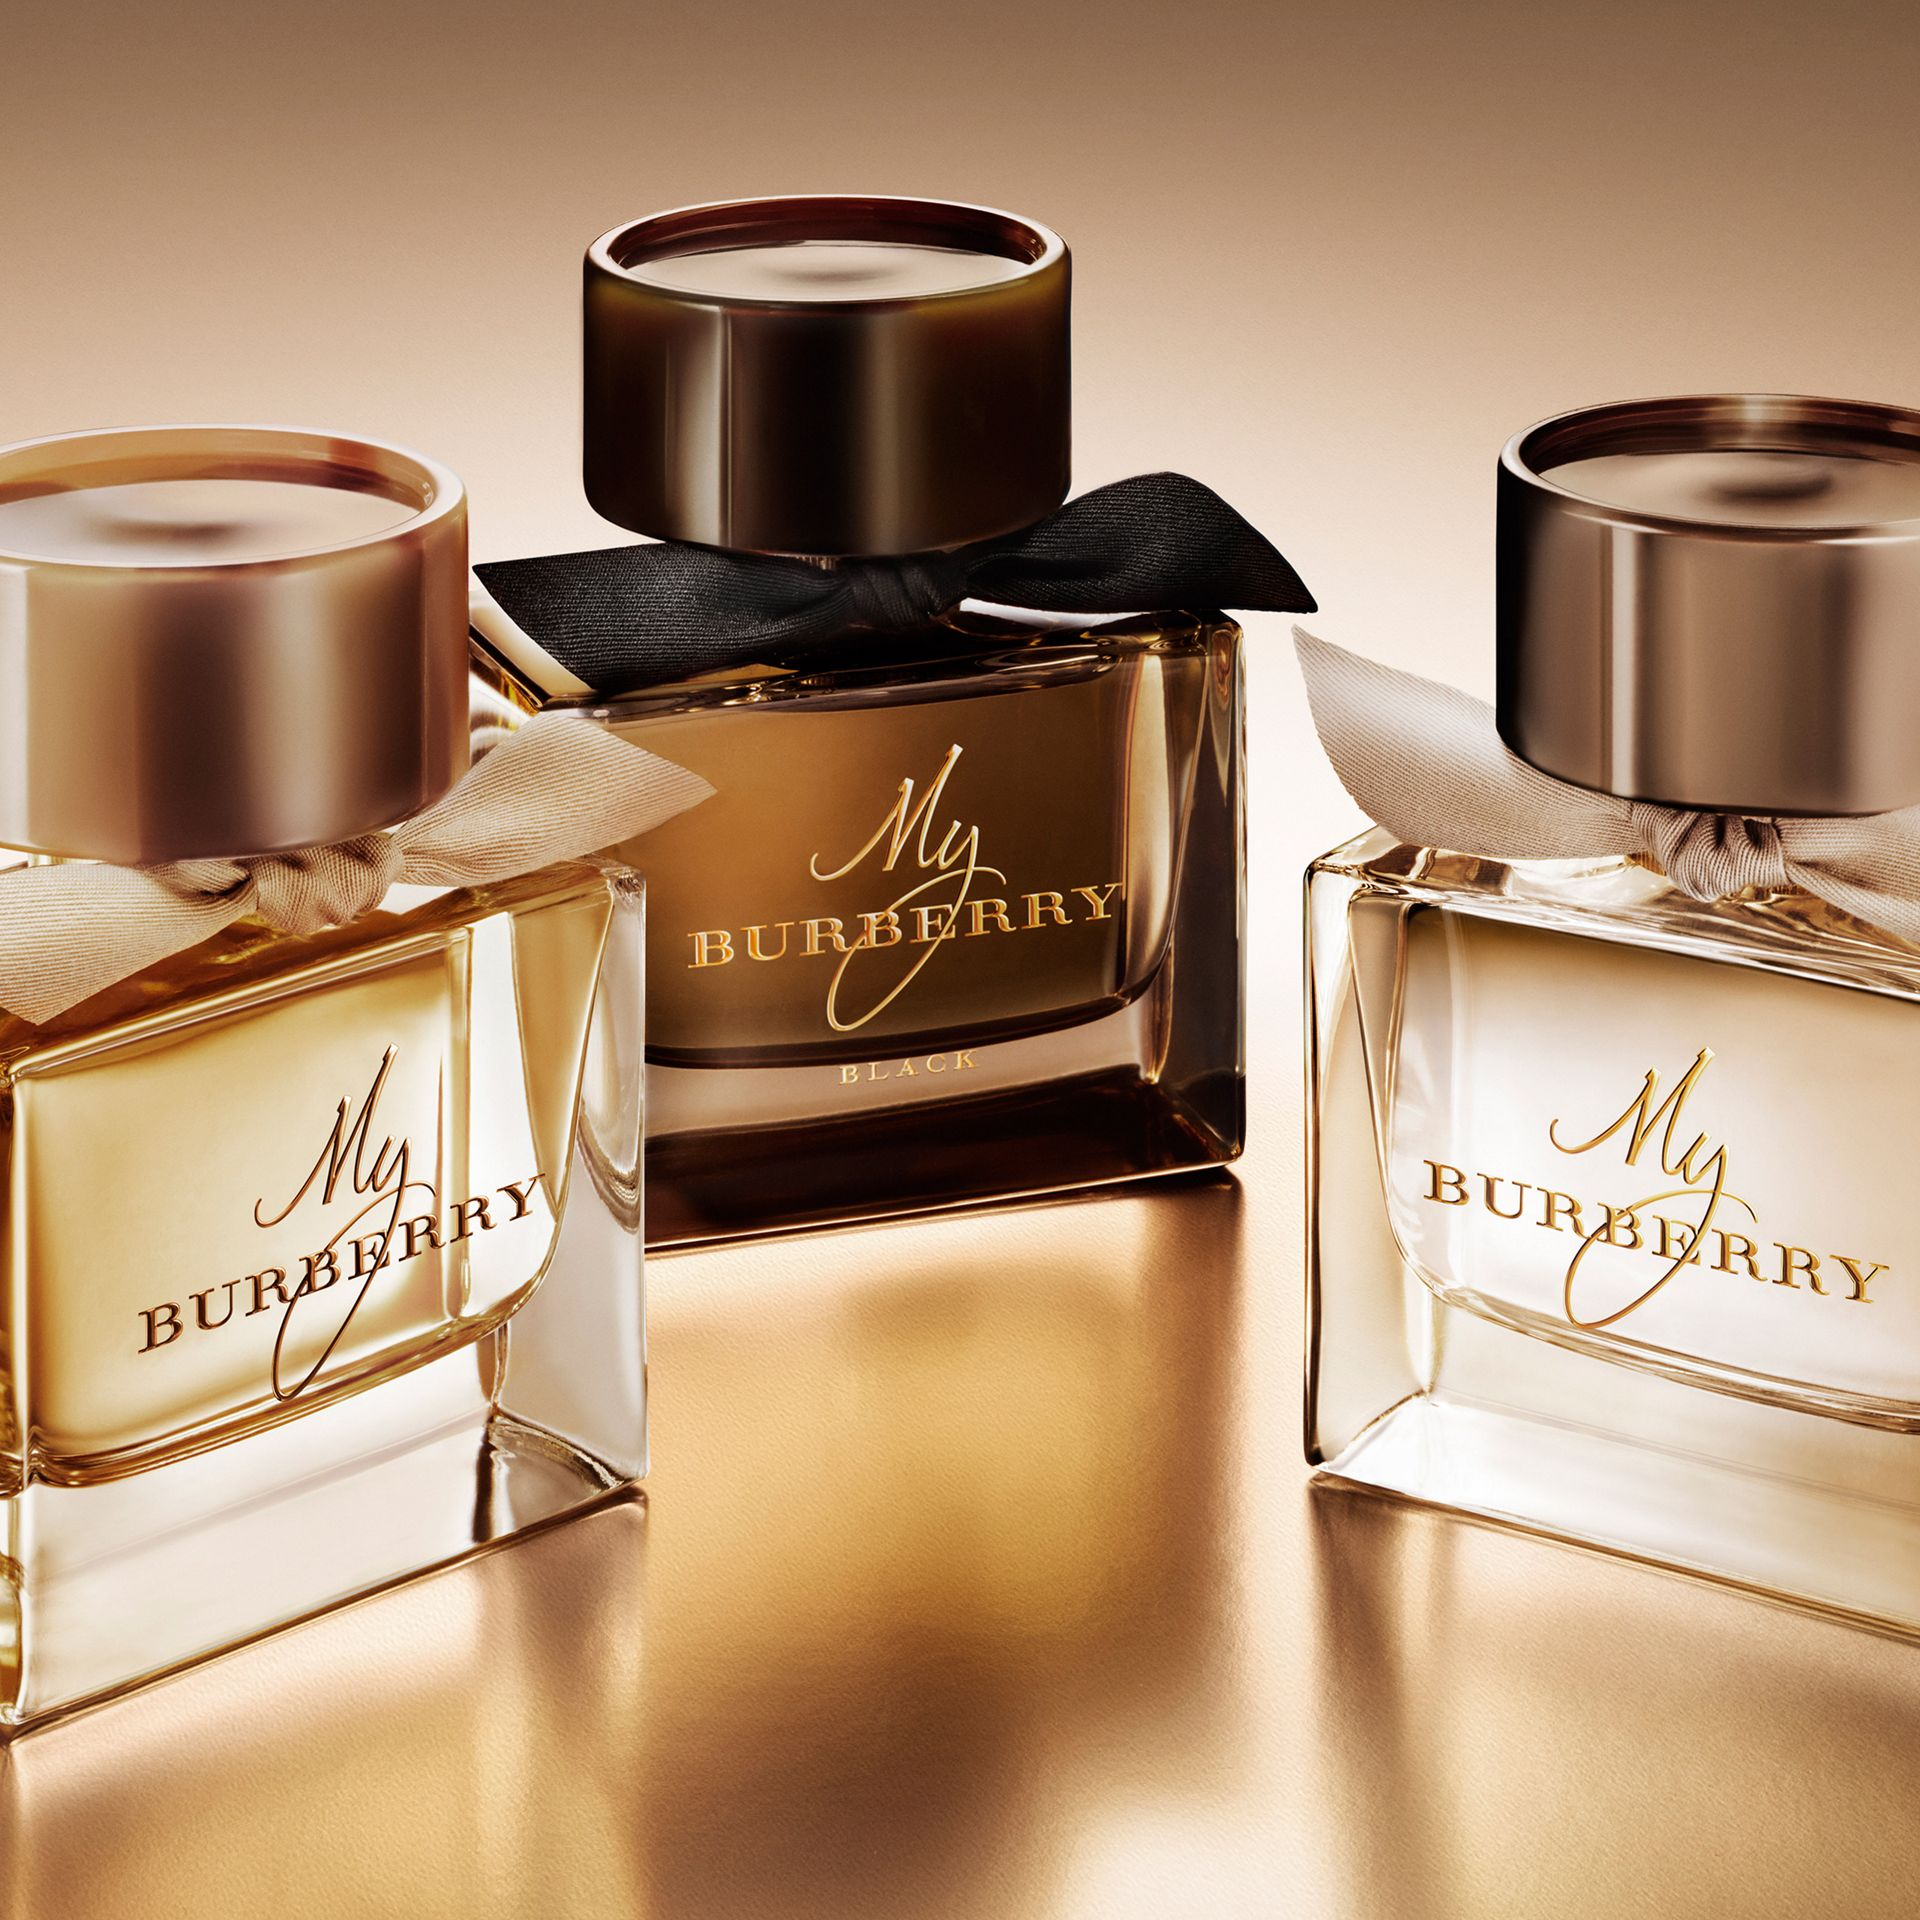 Аромат My Burberry Black, 90 мл (90ml) - Для женщин | Burberry - изображение 2